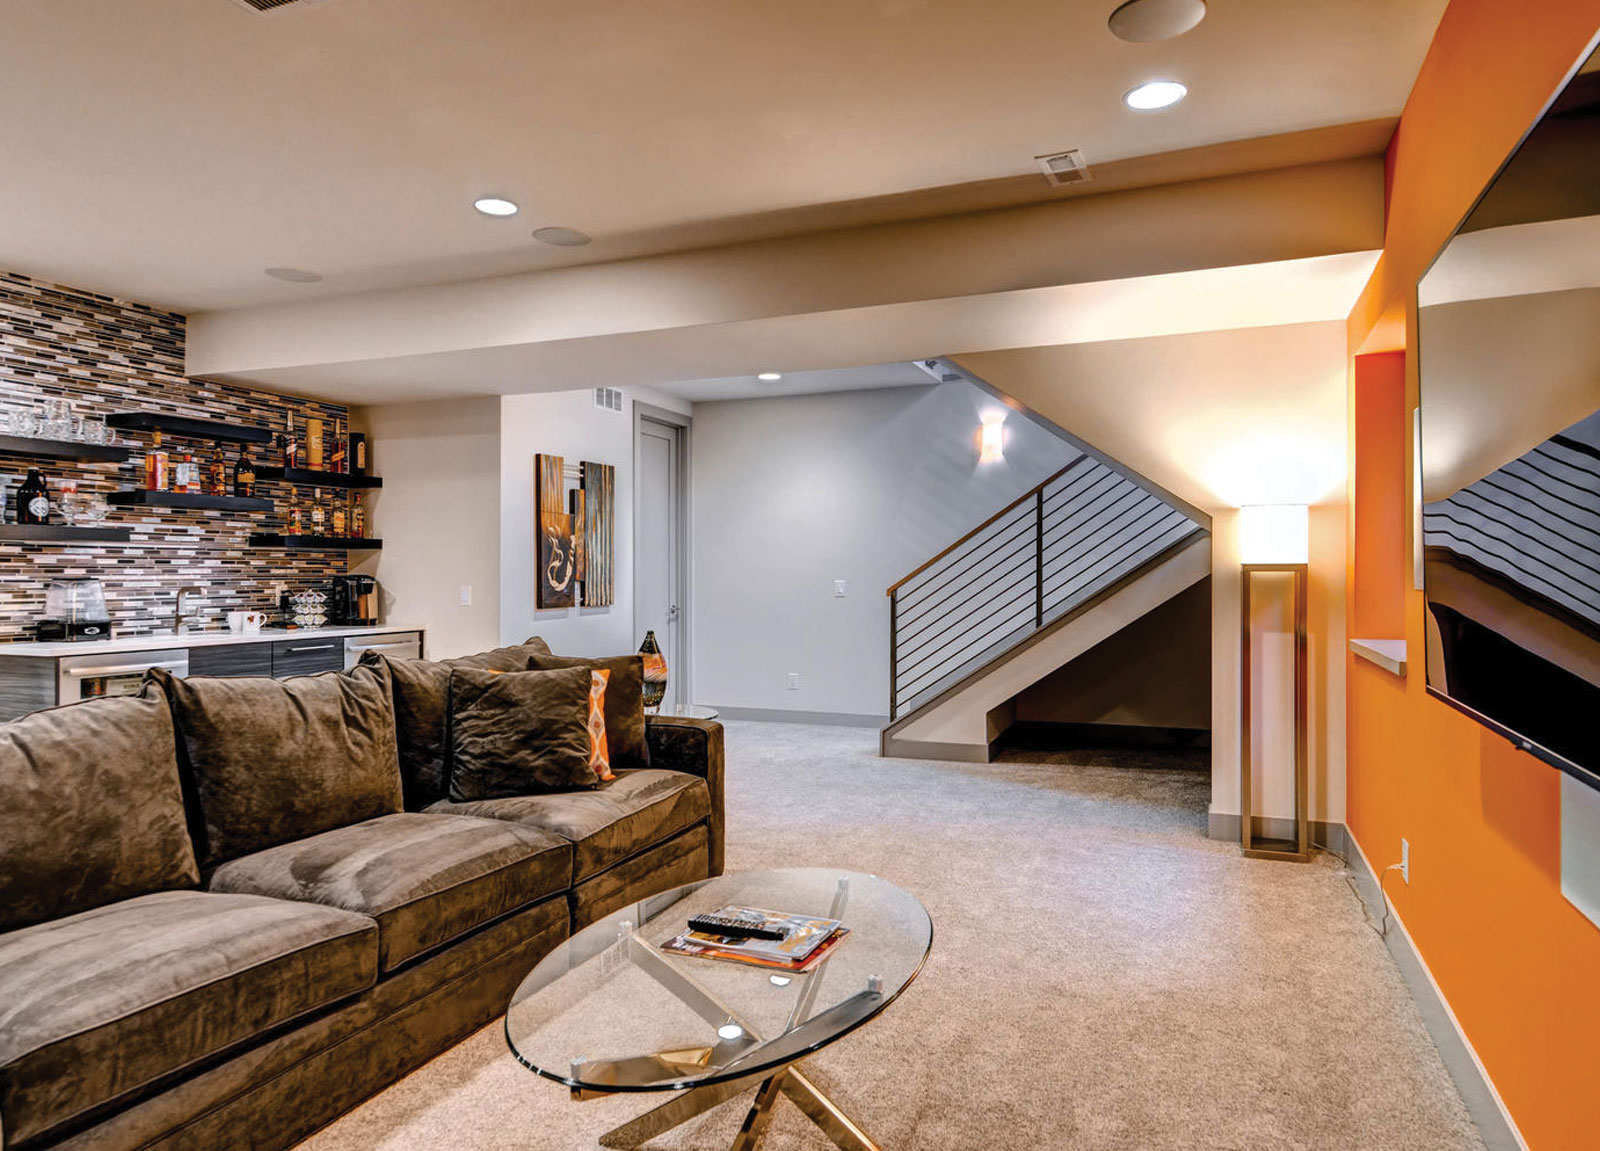 Basement Remodeling is the Most Popular Home Project for New Space and Added Value